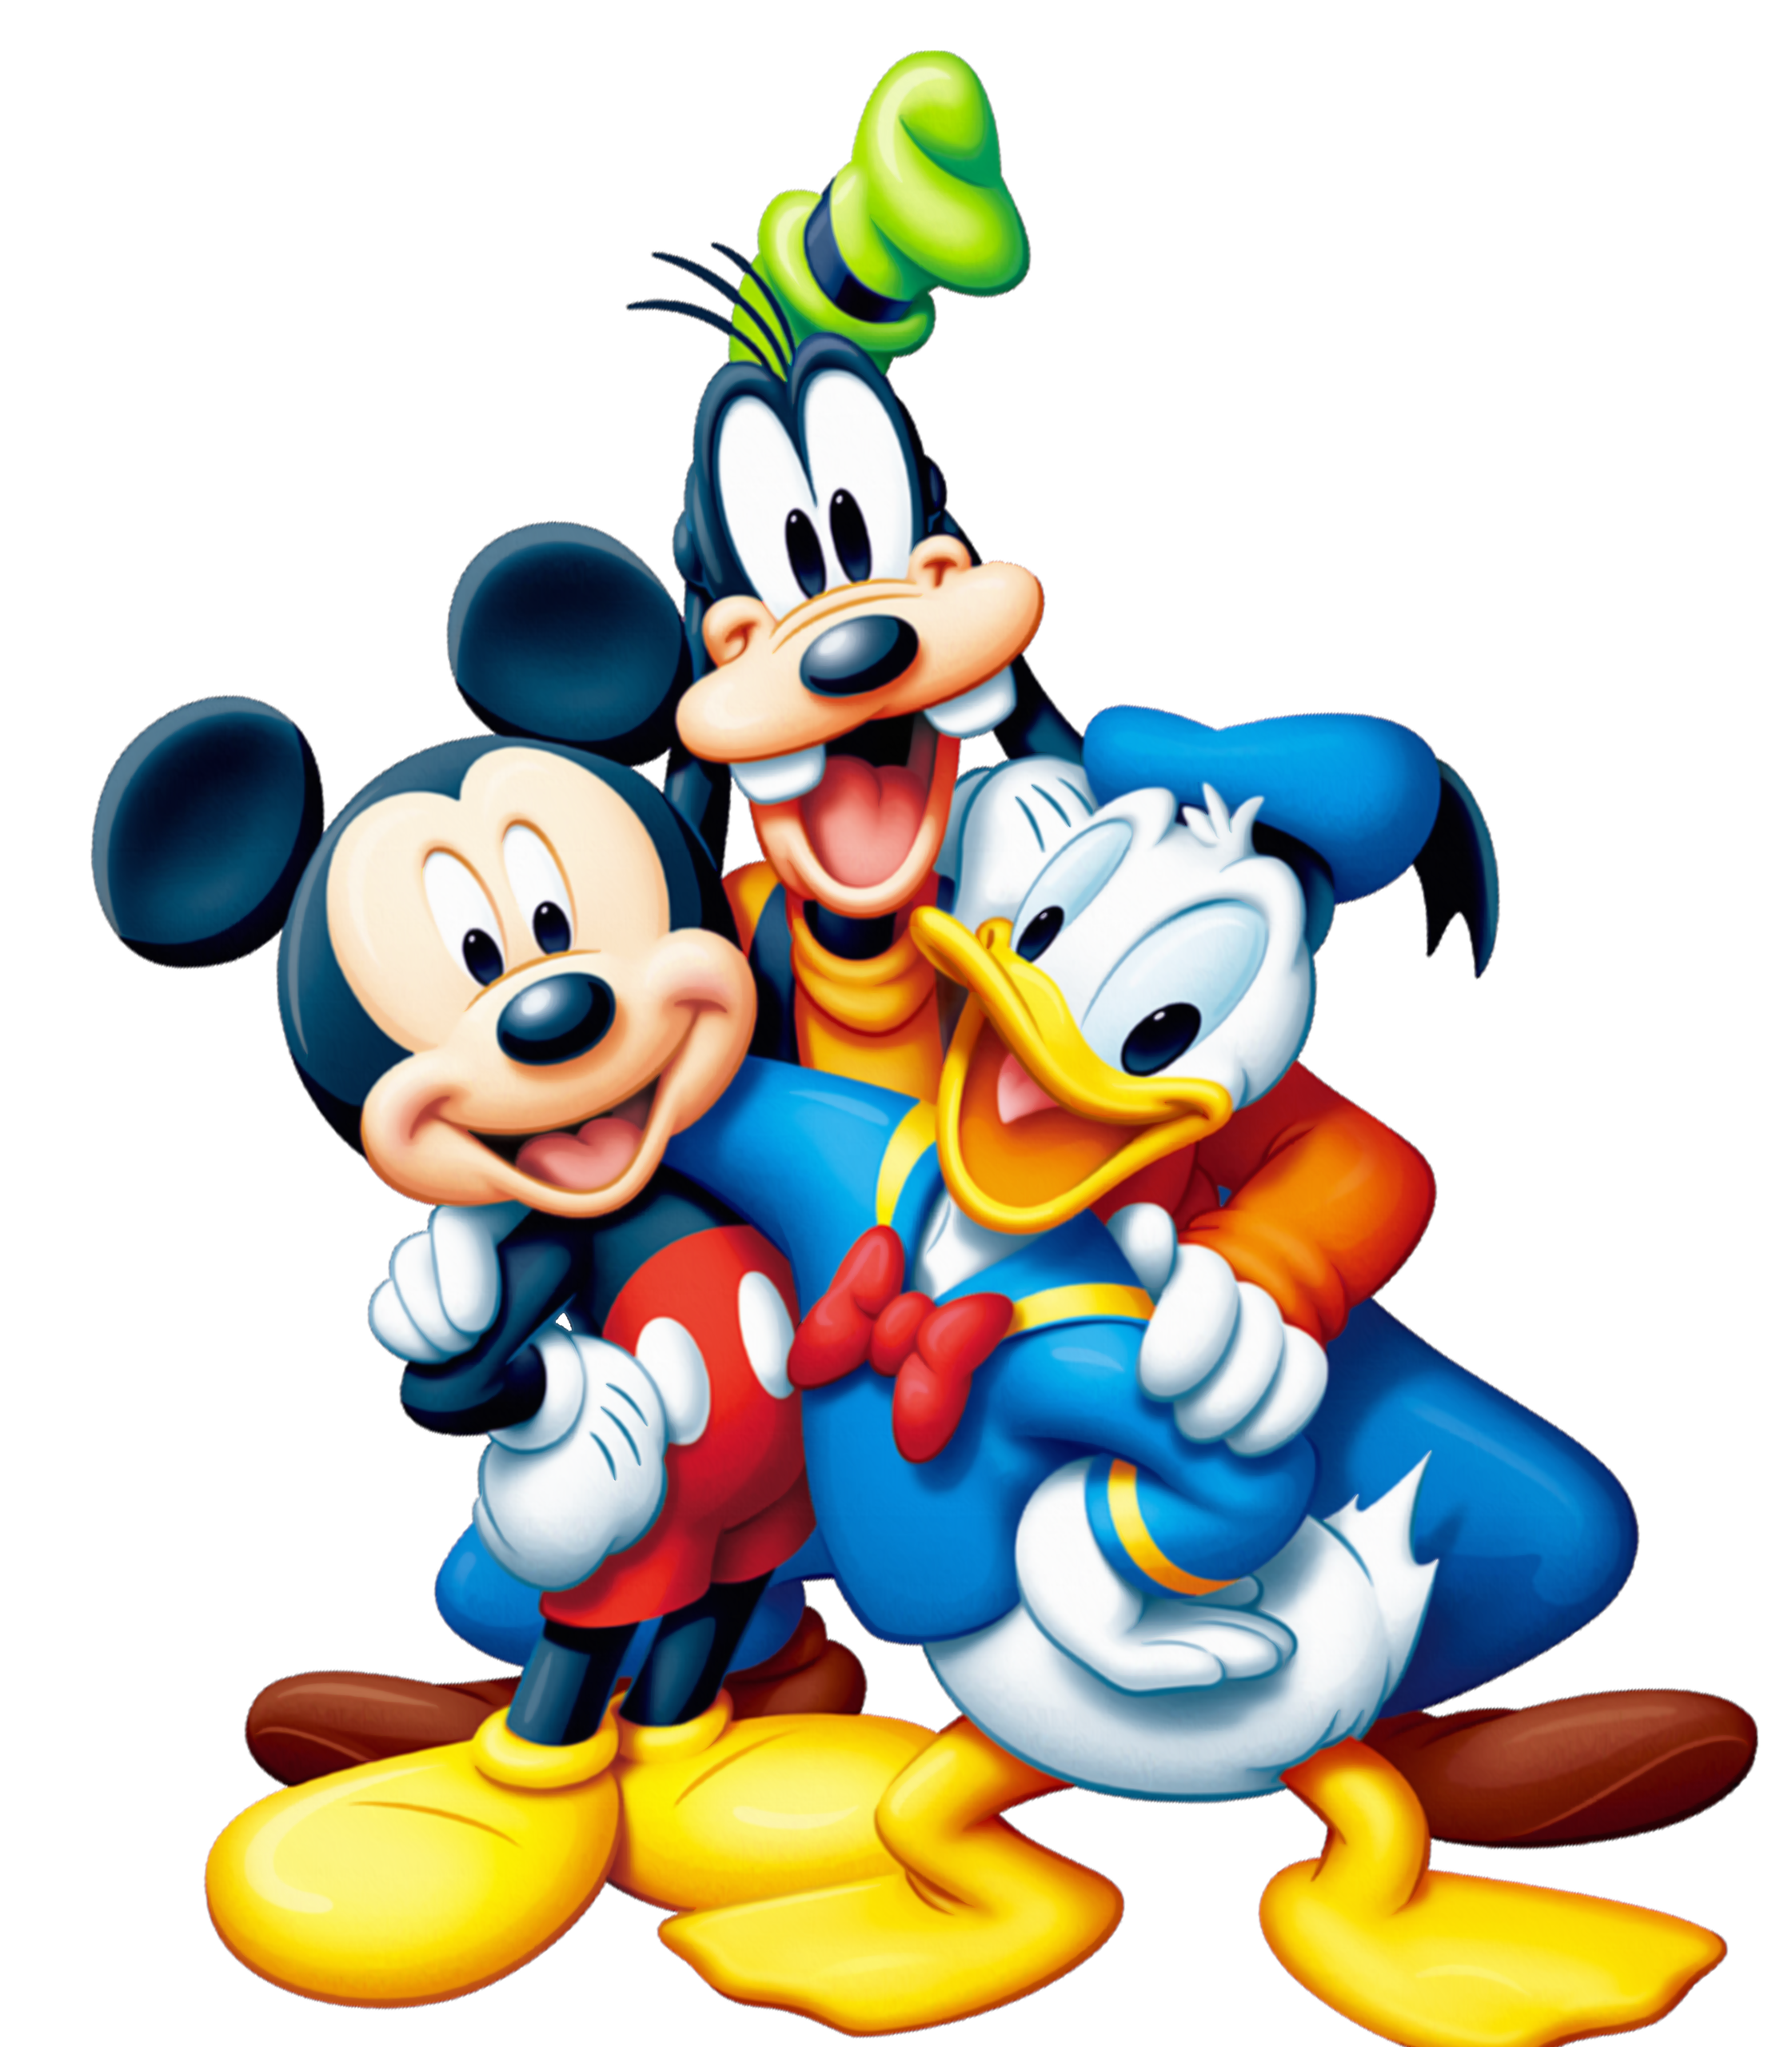 Mickey mouse and friends clipart free download Mickey Mouse and Friends PNG Clipart | Gallery Yopriceville ... free download